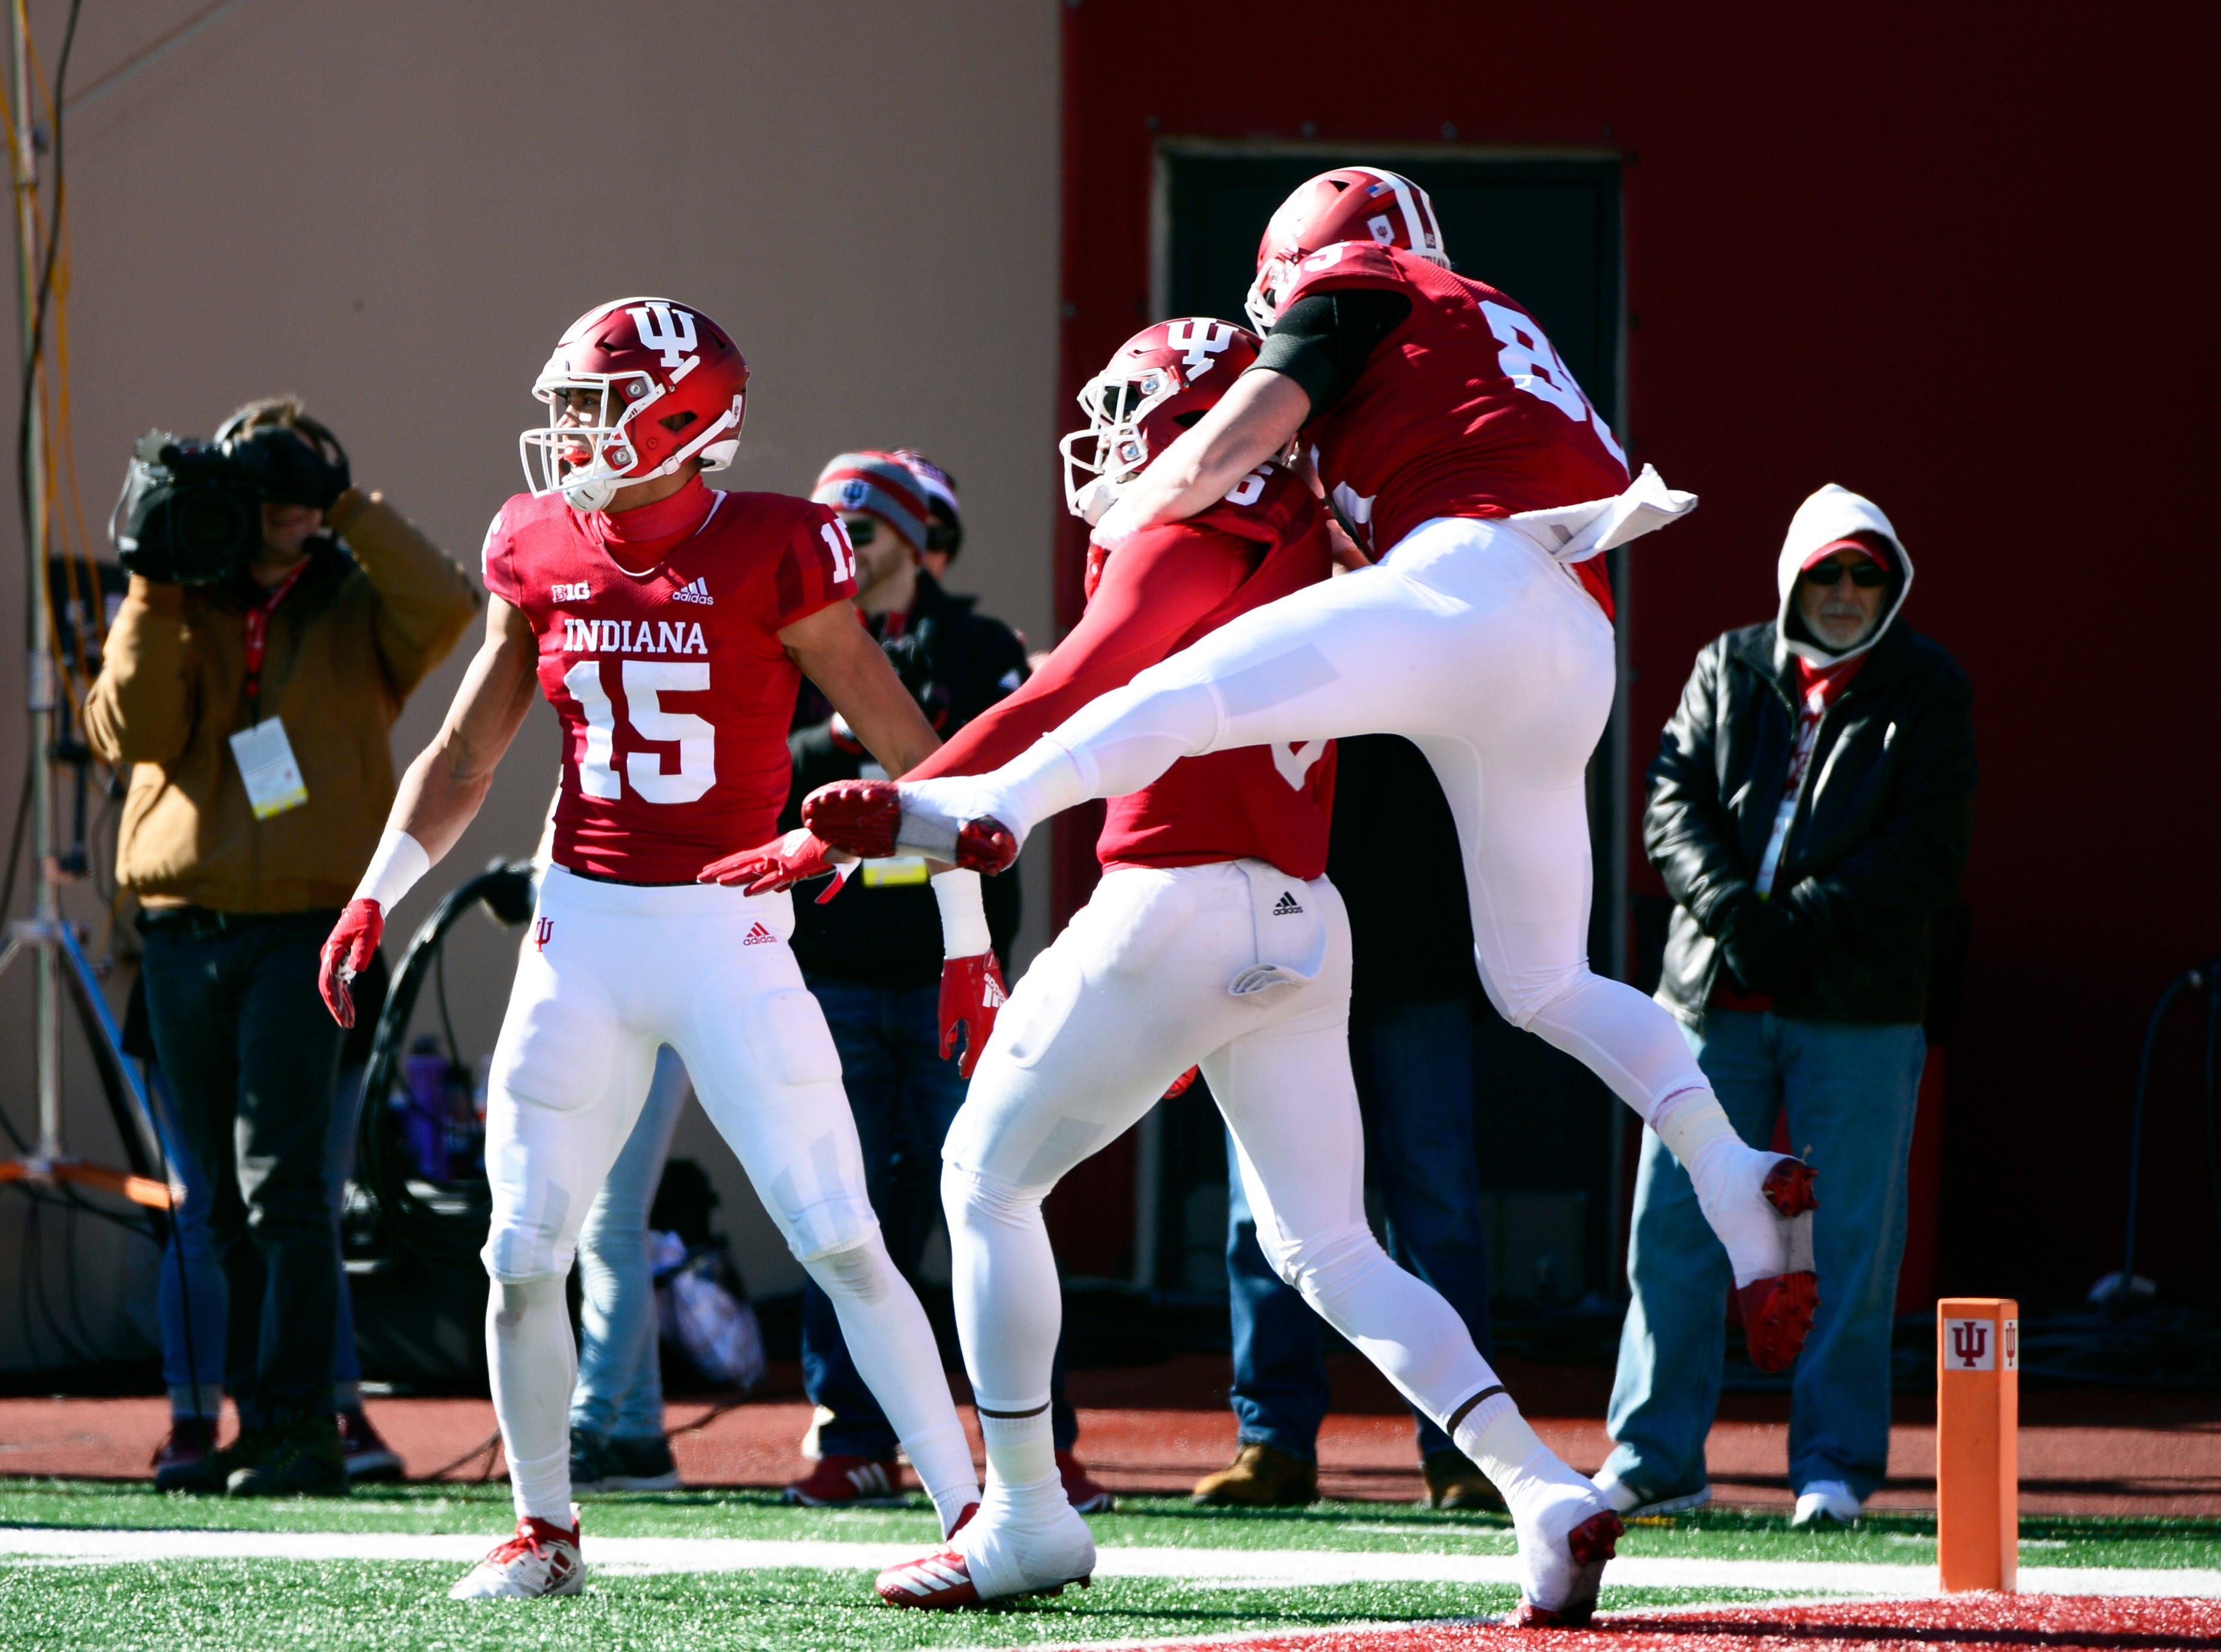 The Indiana Hoosiers celebrate after Donovan Hale (6) scores a touchdown during the game against Maryland at Memorial Stadium in Bloomington, Ind., on Satuday, Nov. 10, 2018.